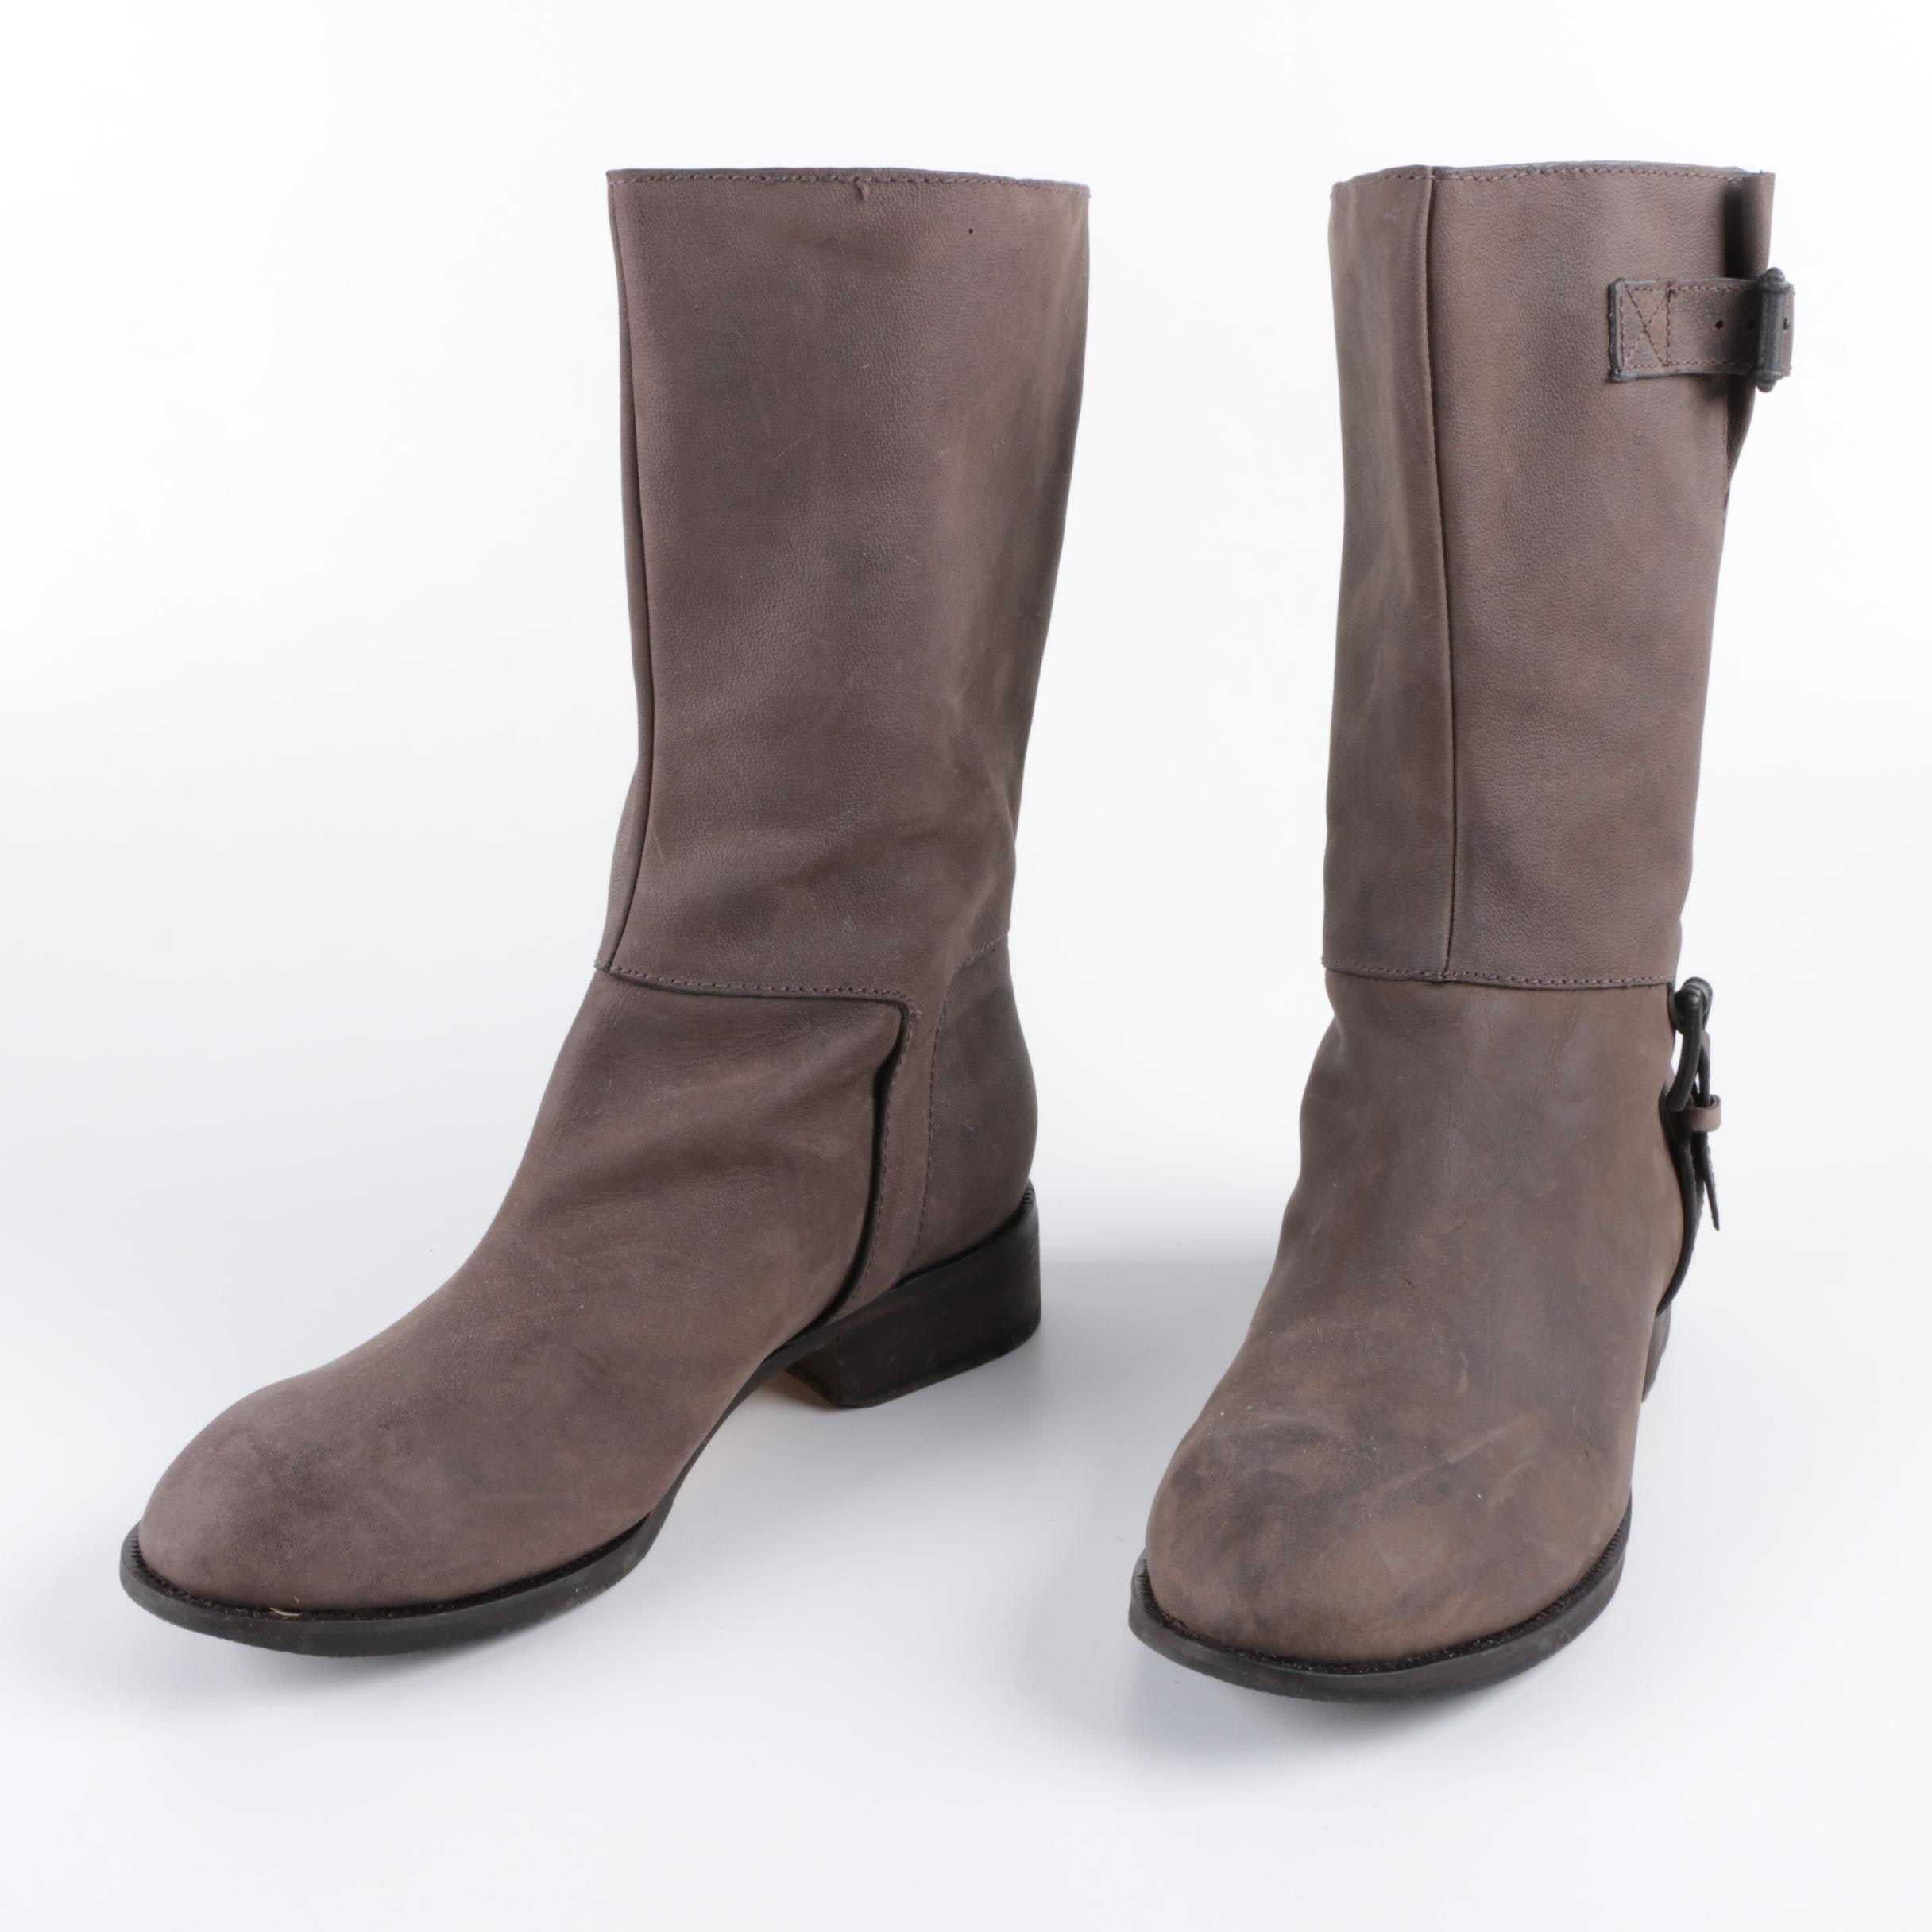 Cole Haan Leora Brown Boots with Buckle Straps